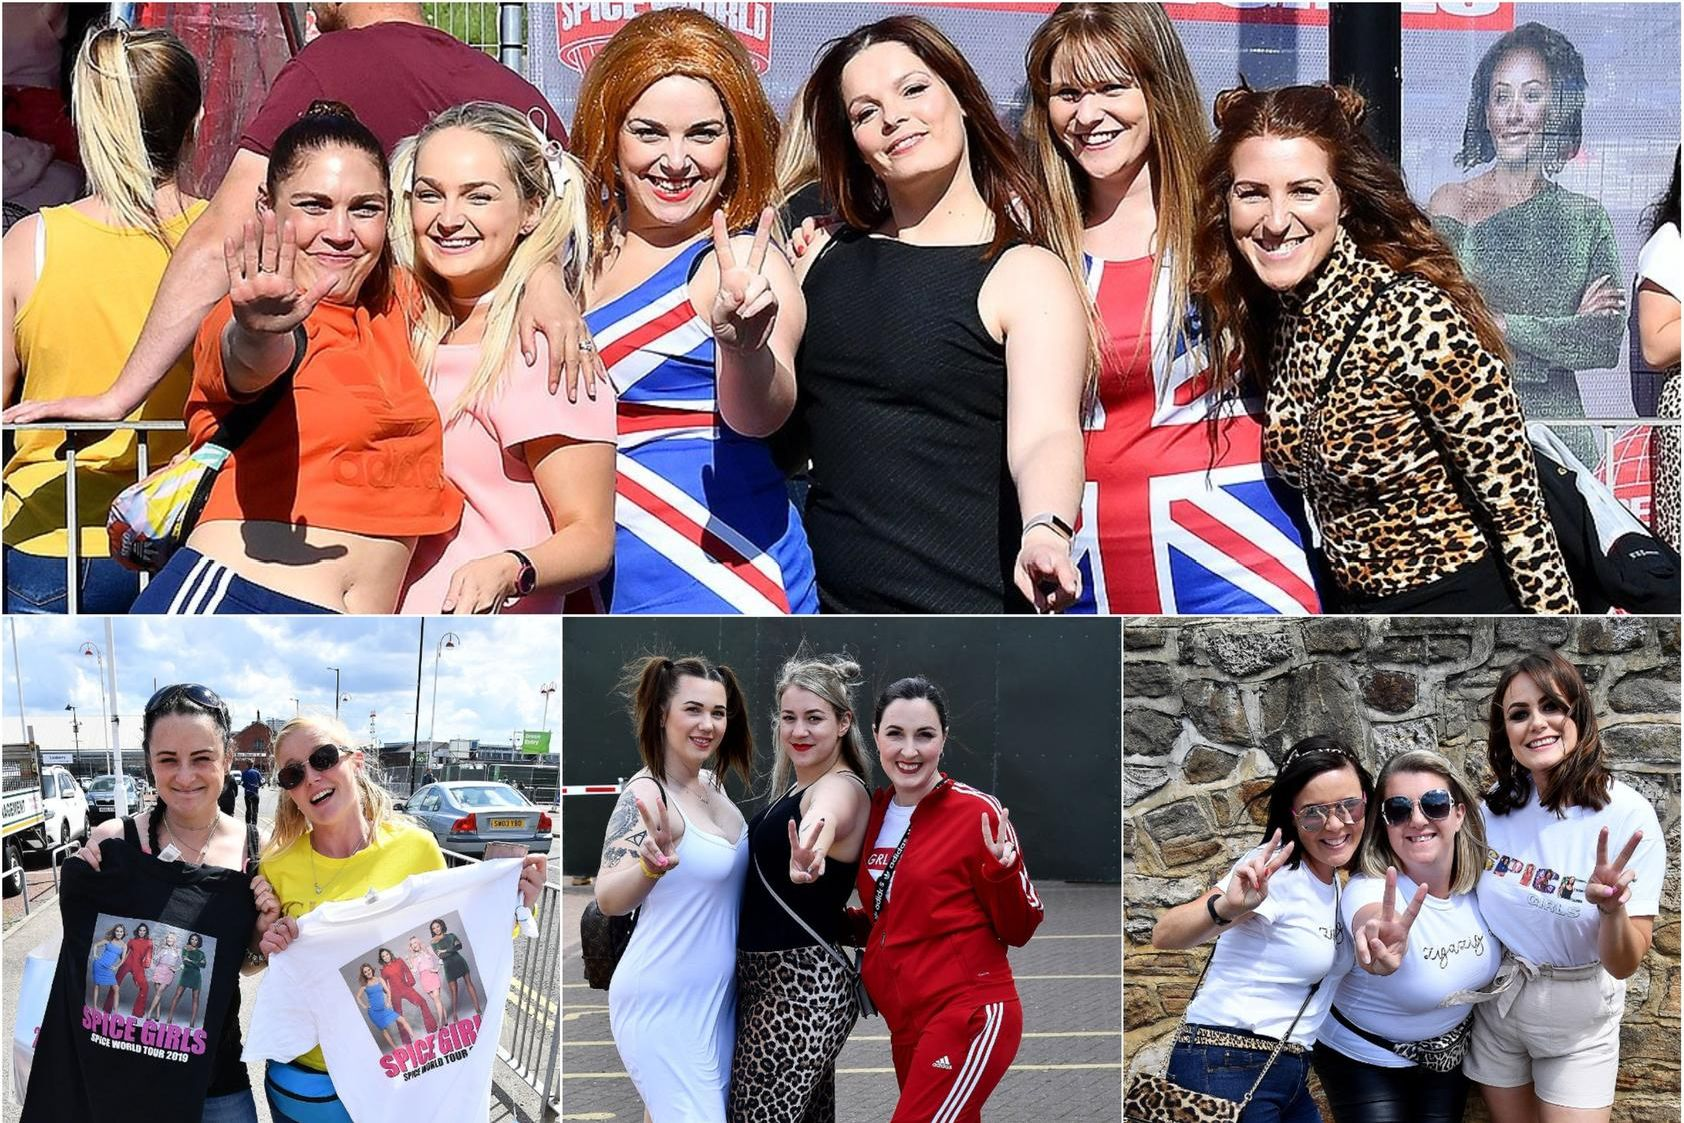 Thousands of fans have been getting ready to see the Spice Girls in Sunderland.